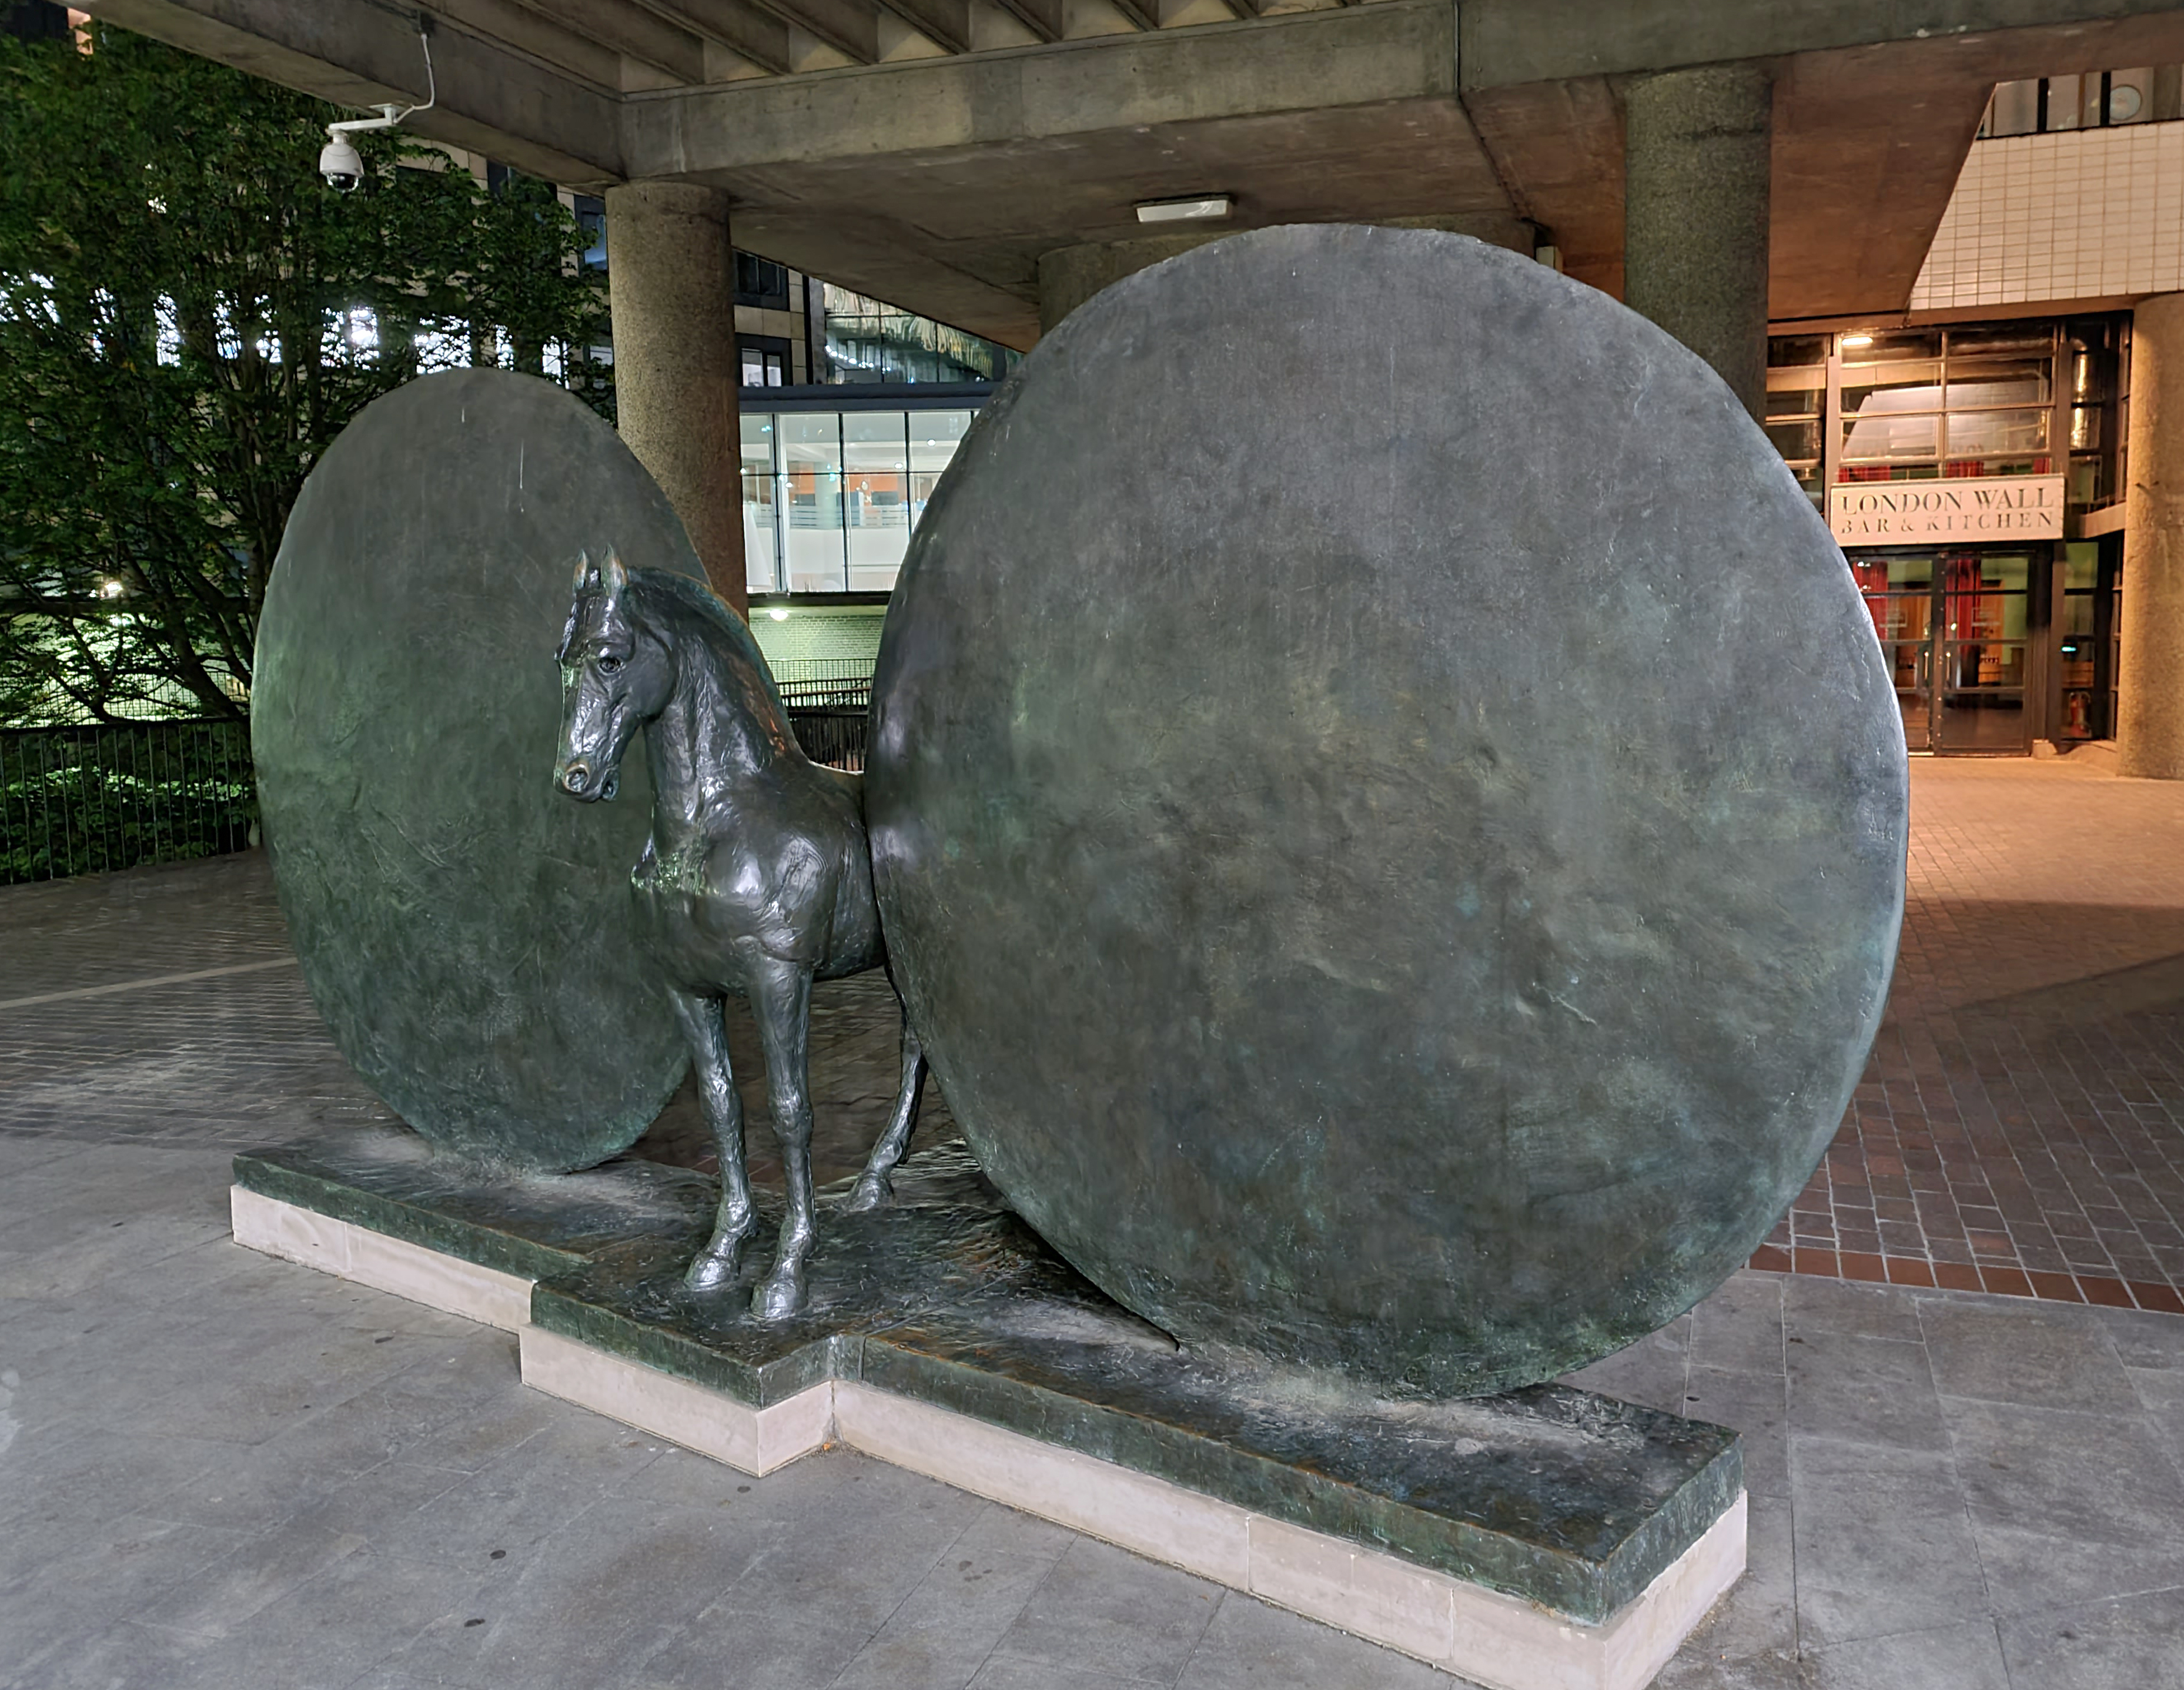 Union- Horse with Two Discs, by Christopher le Brun. Museum of London, Barbican. 2001